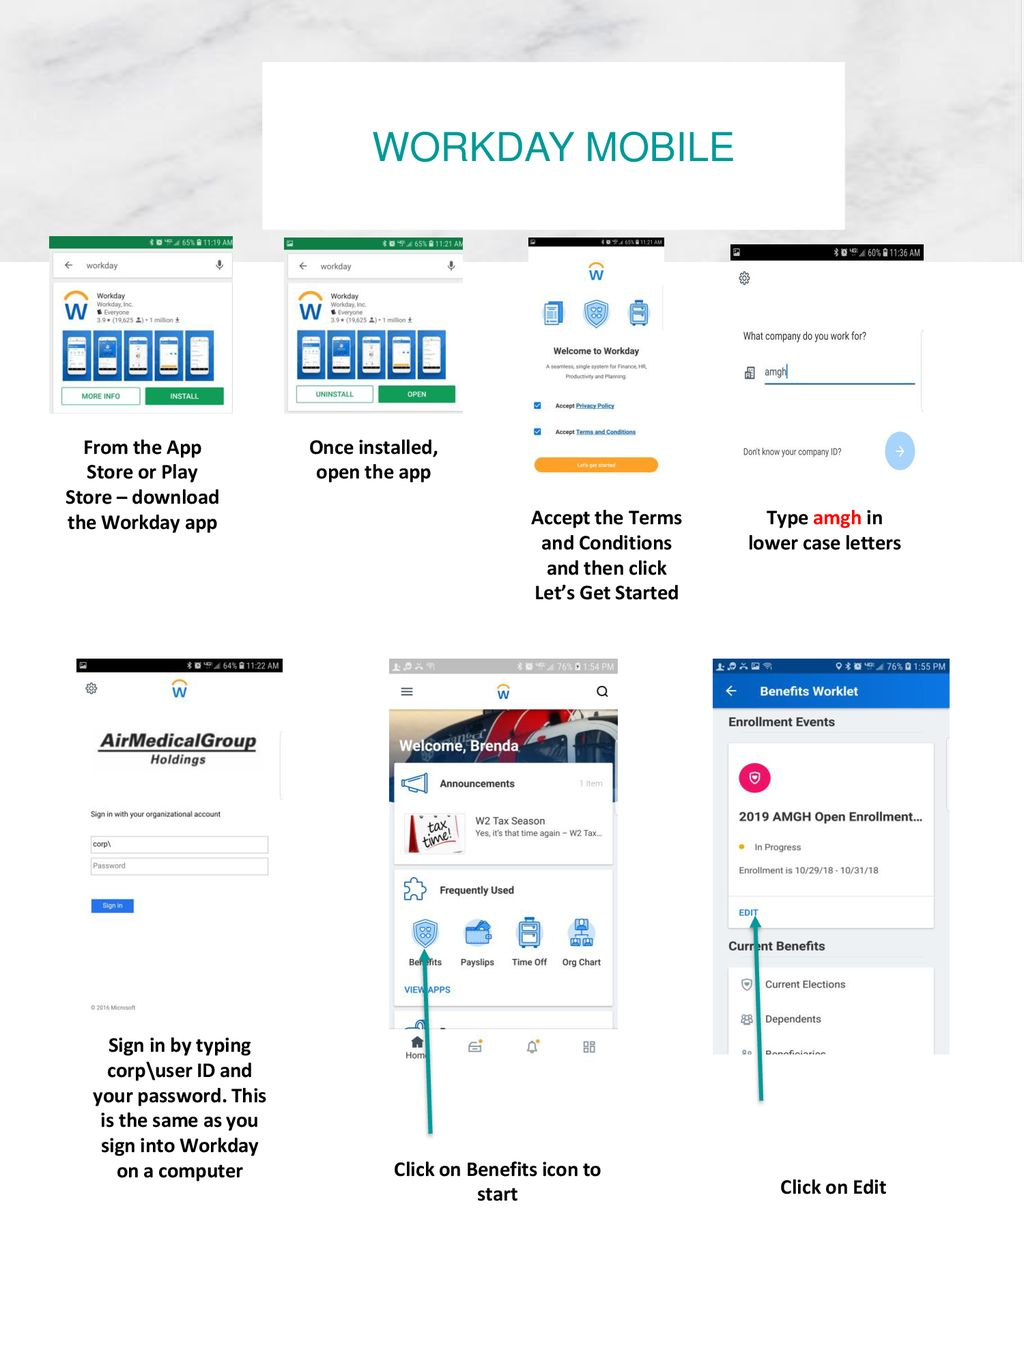 Workday mobile From the App Store or Play Store – download